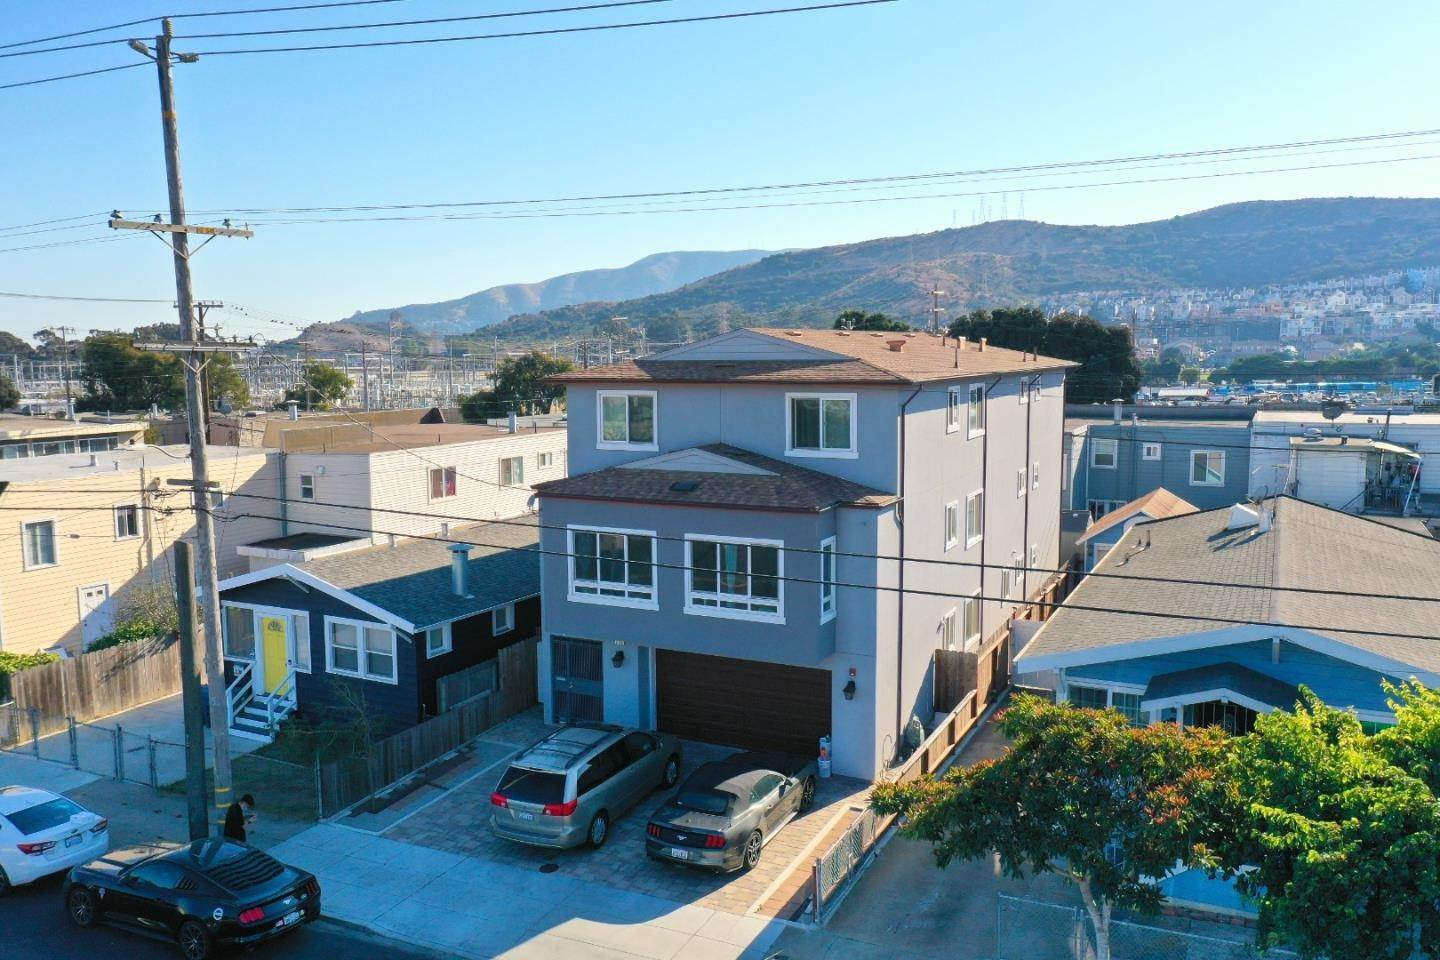 Single Family Homes for Sale at 209 Macdonald Avenue Daly City, California 94014 United States